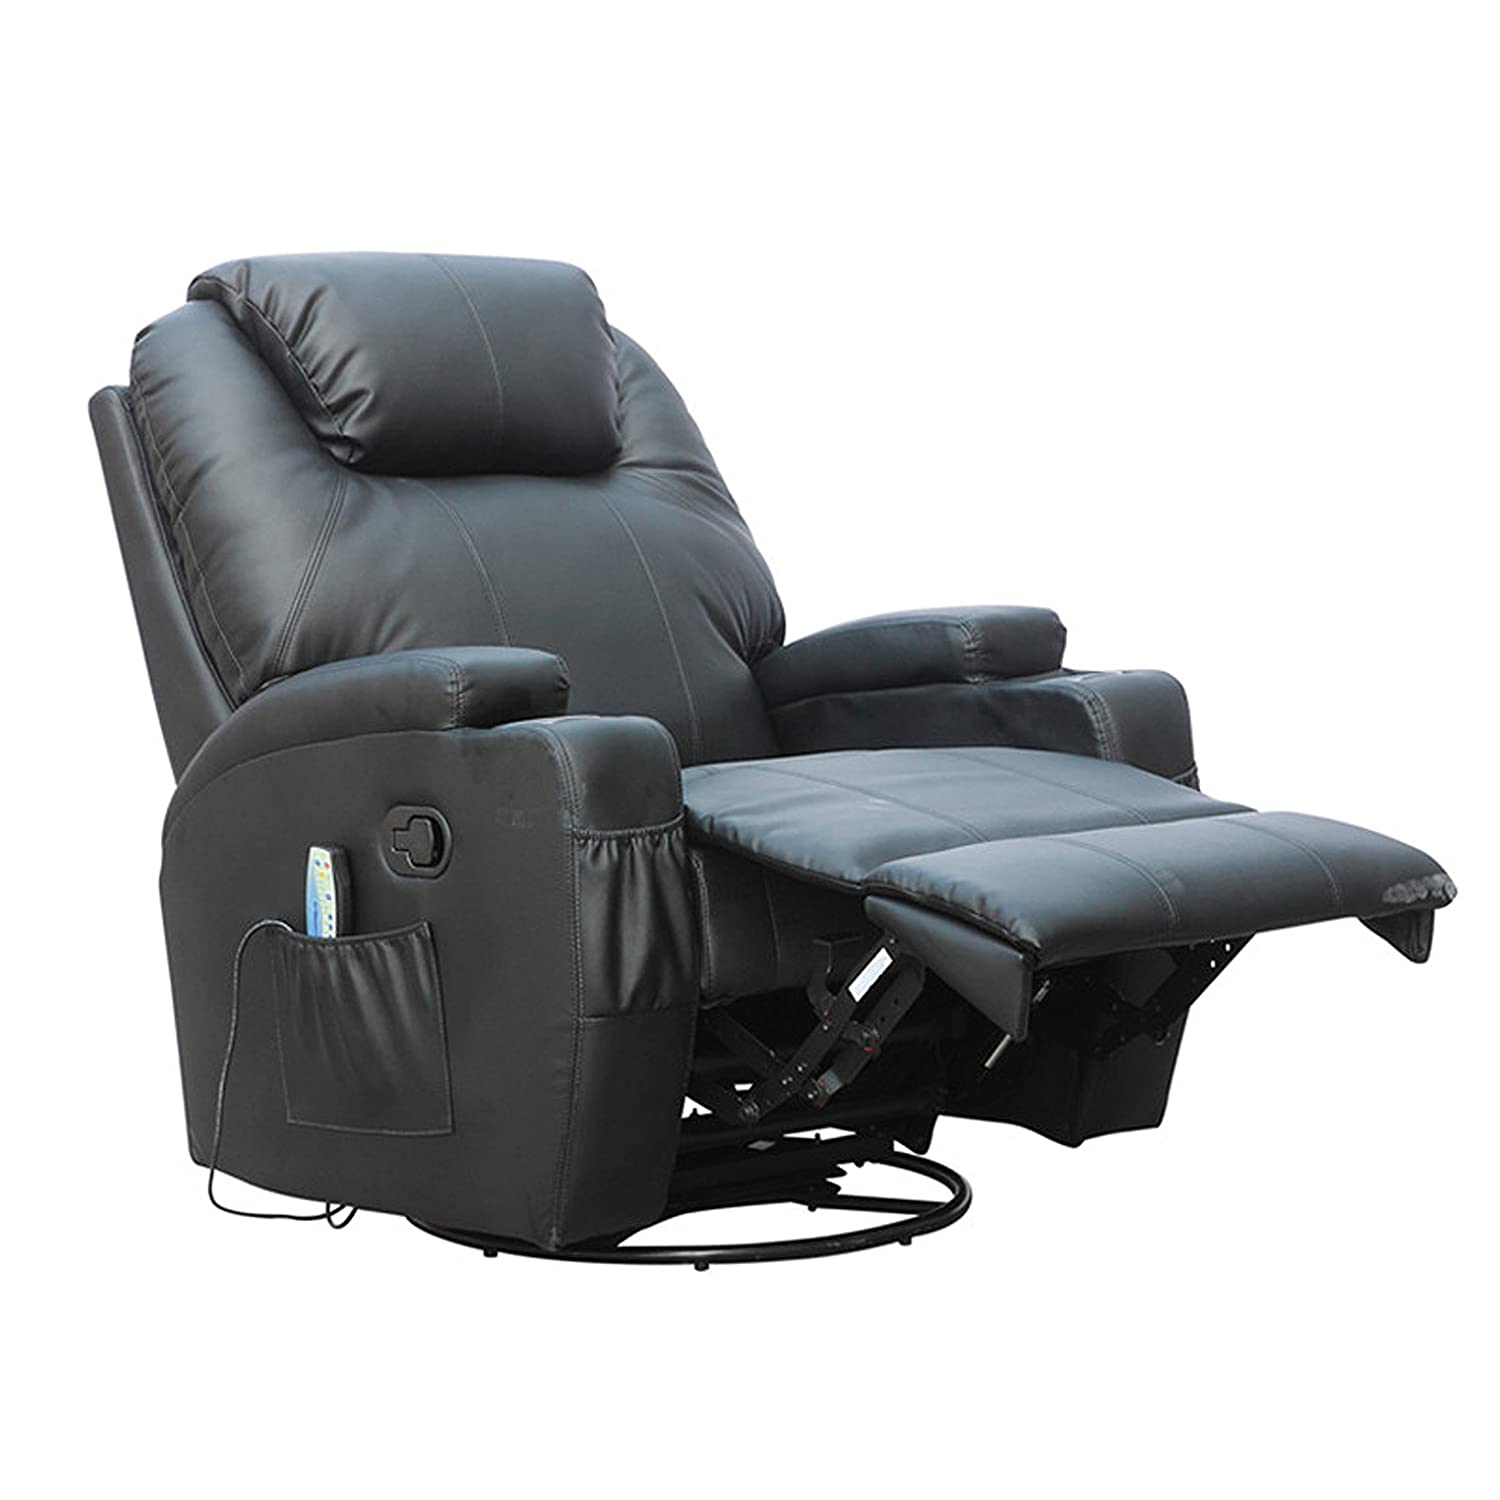 FoxHunter Bonded Leather Massage Cinema Recliner Sofa Chair